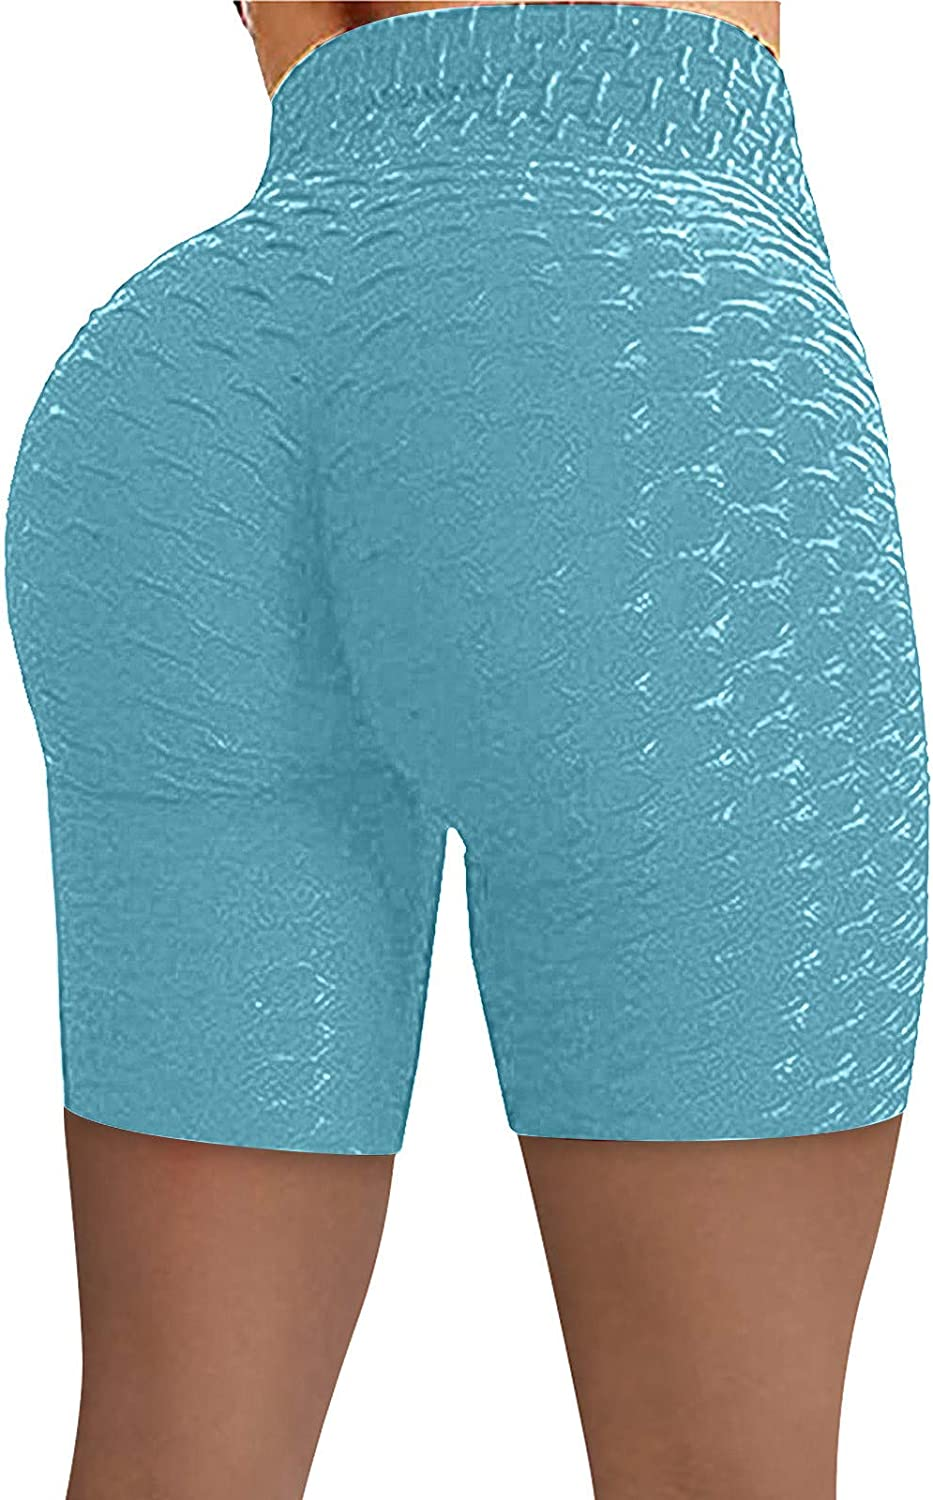 Workout Shorts for Women,Butt Lifting Yoga Shorts for Women Tummy Control Leggings Textured Ruched Running Shorts